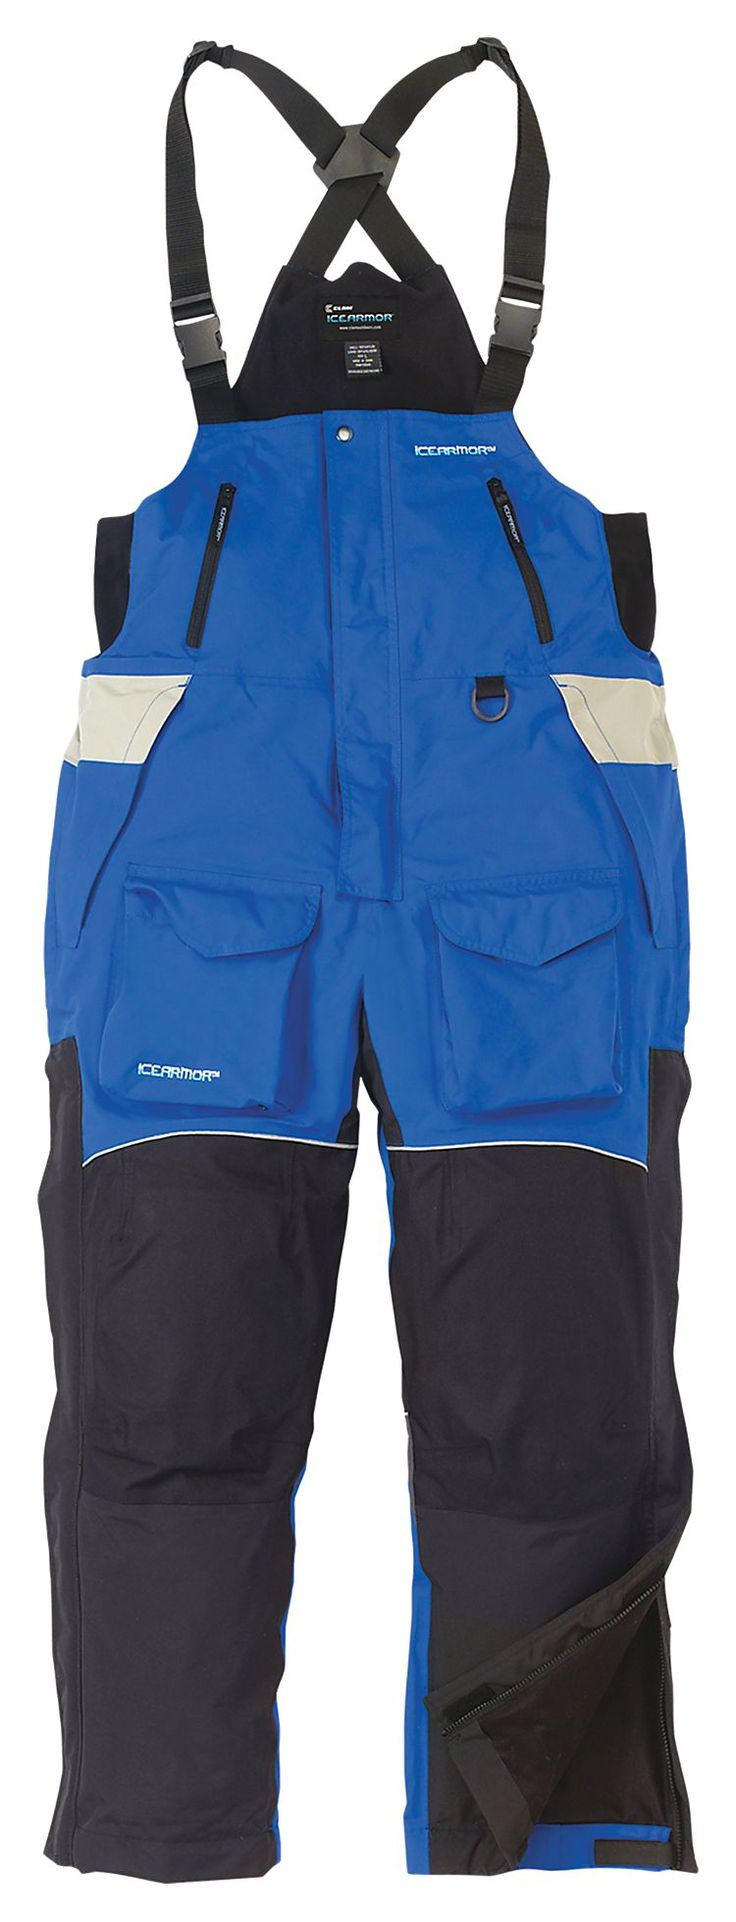 Icearmor by clam edge cold weather bibs for men bass pro for Cold weather fishing gloves